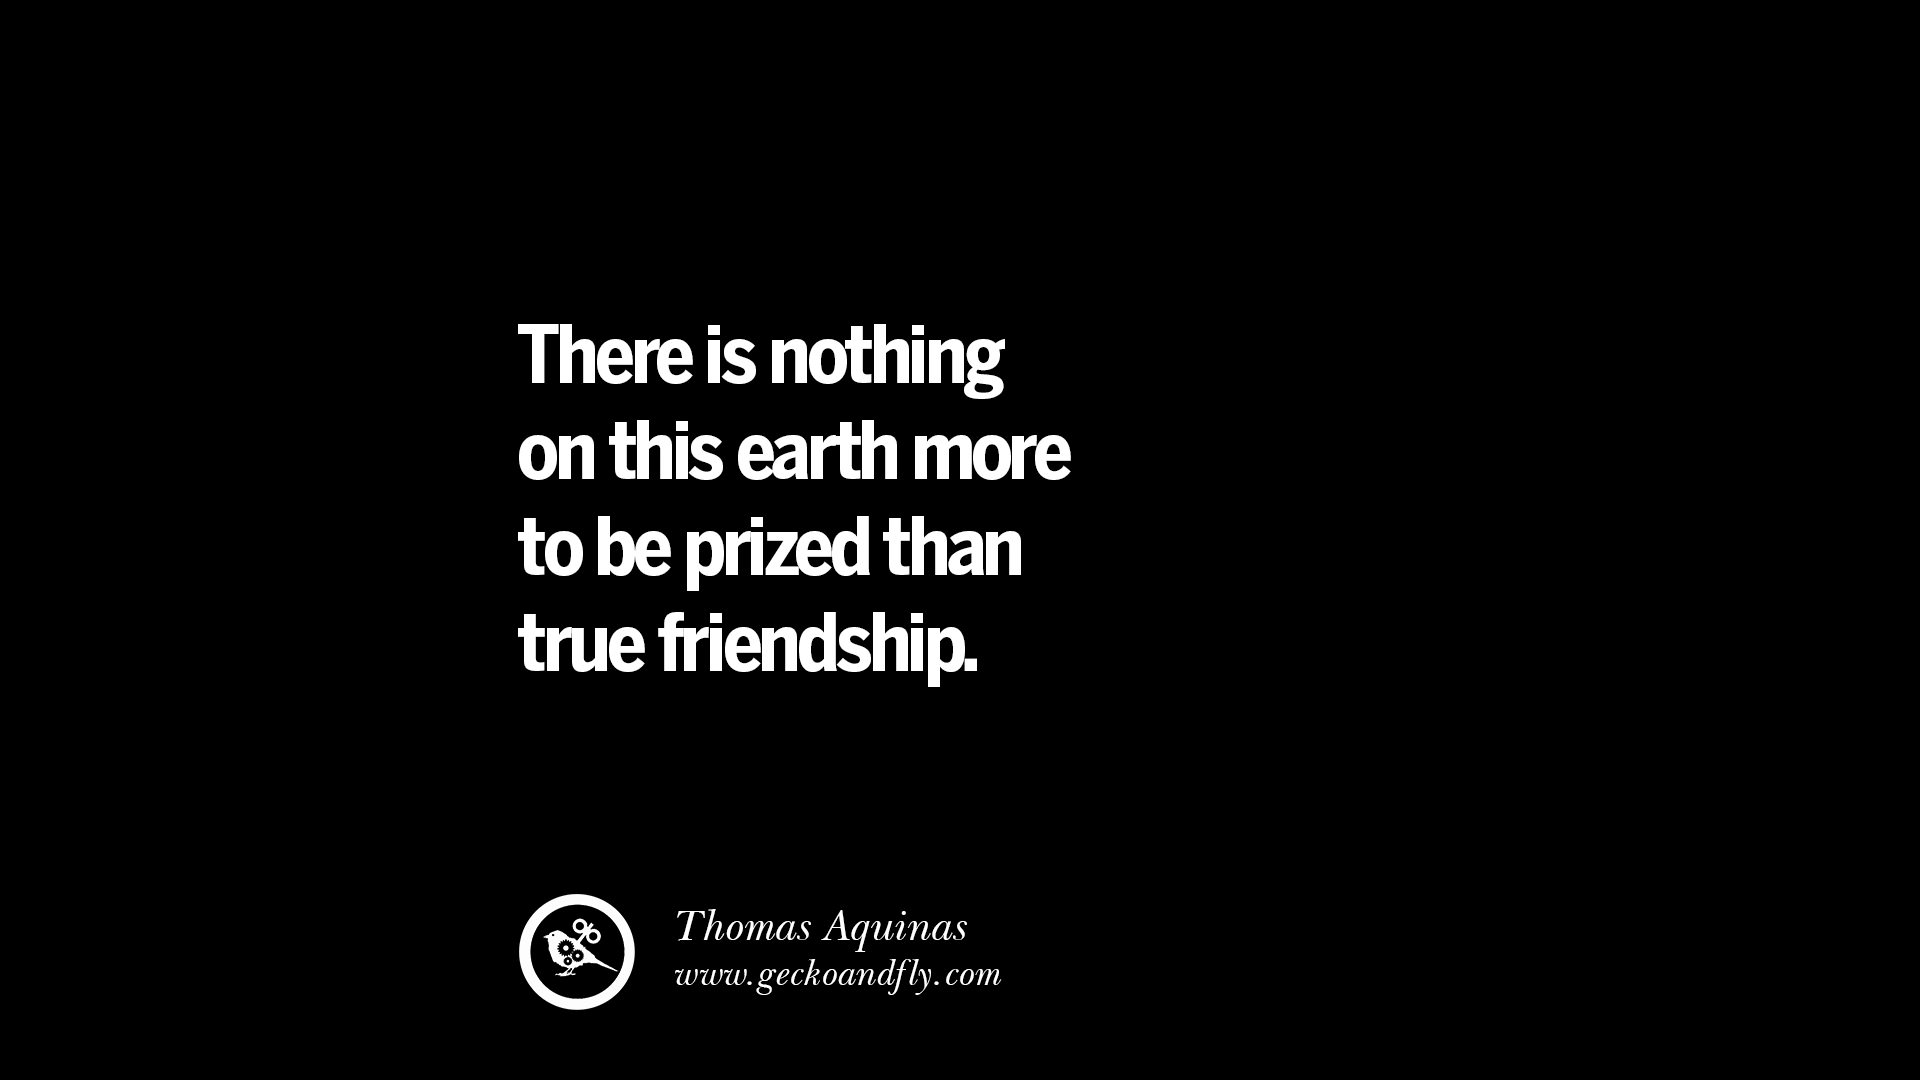 Love Friendship Quotes 20 Amazing Quotes About Friendship Love And Friends  Geckoandfly 2018